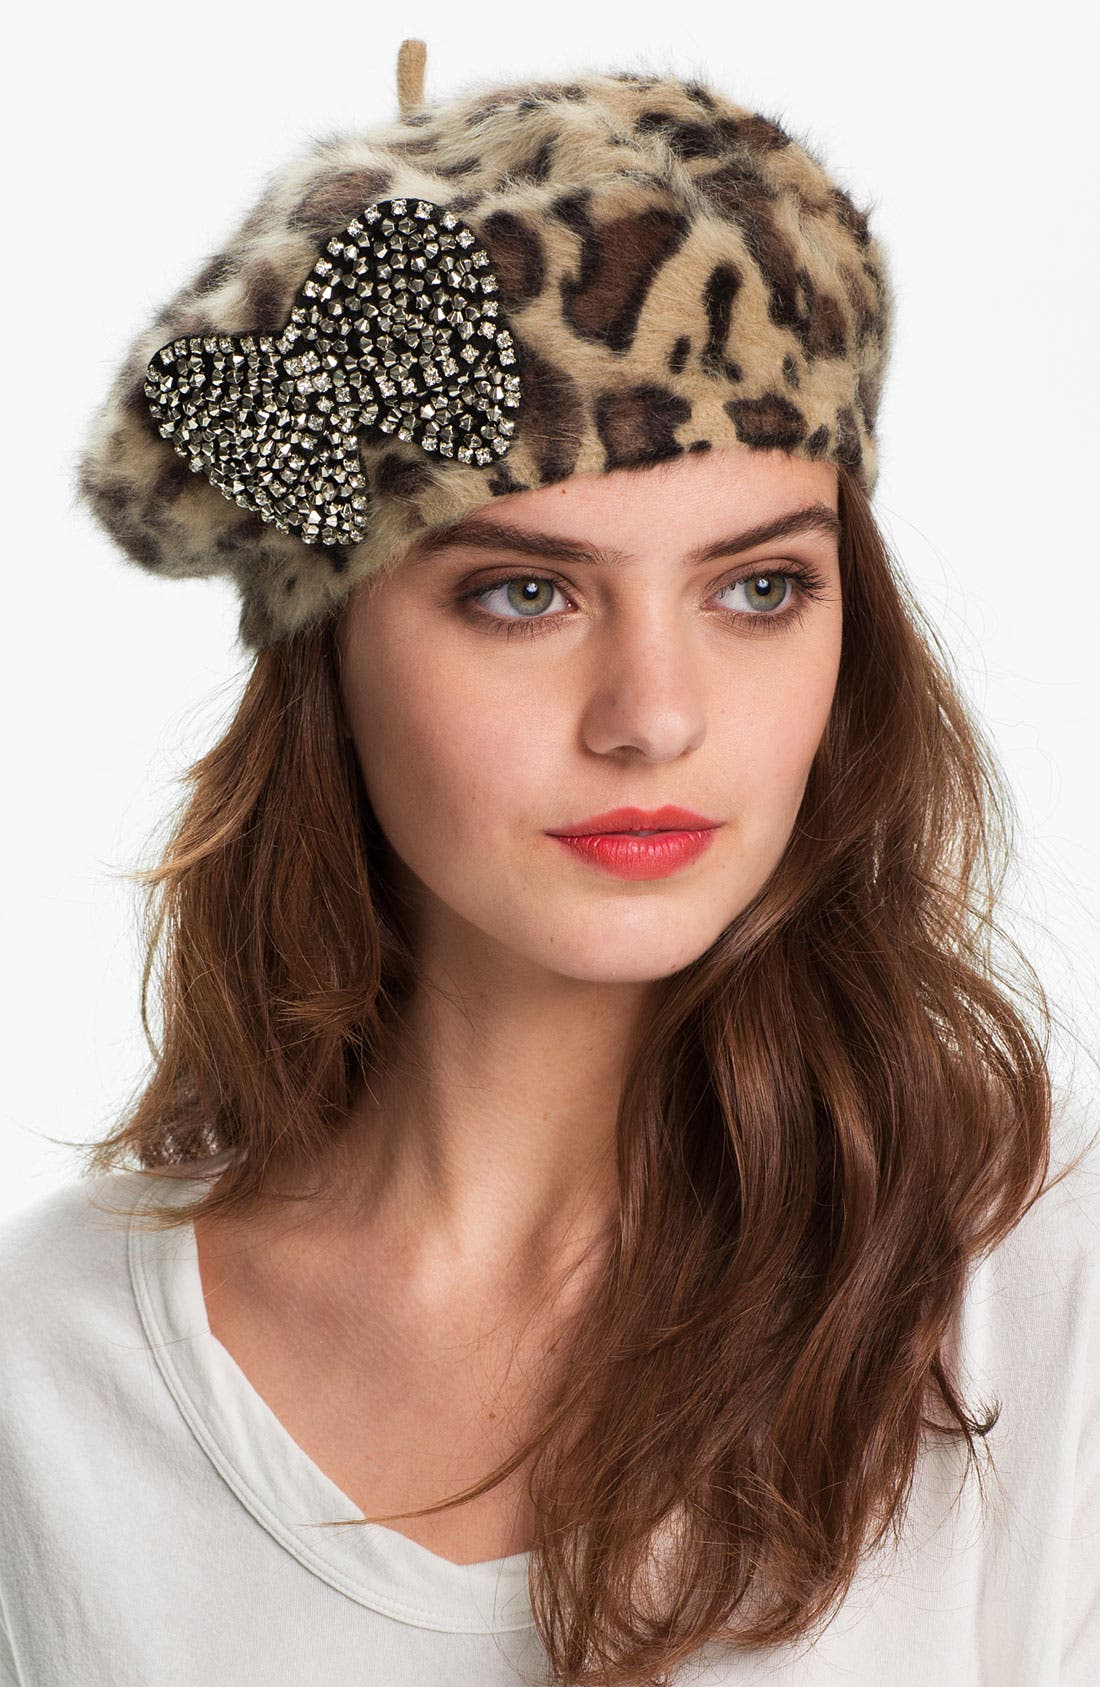 Alternate Image 1 Selected - Betsey Johnson Leopard Print Bow Beret